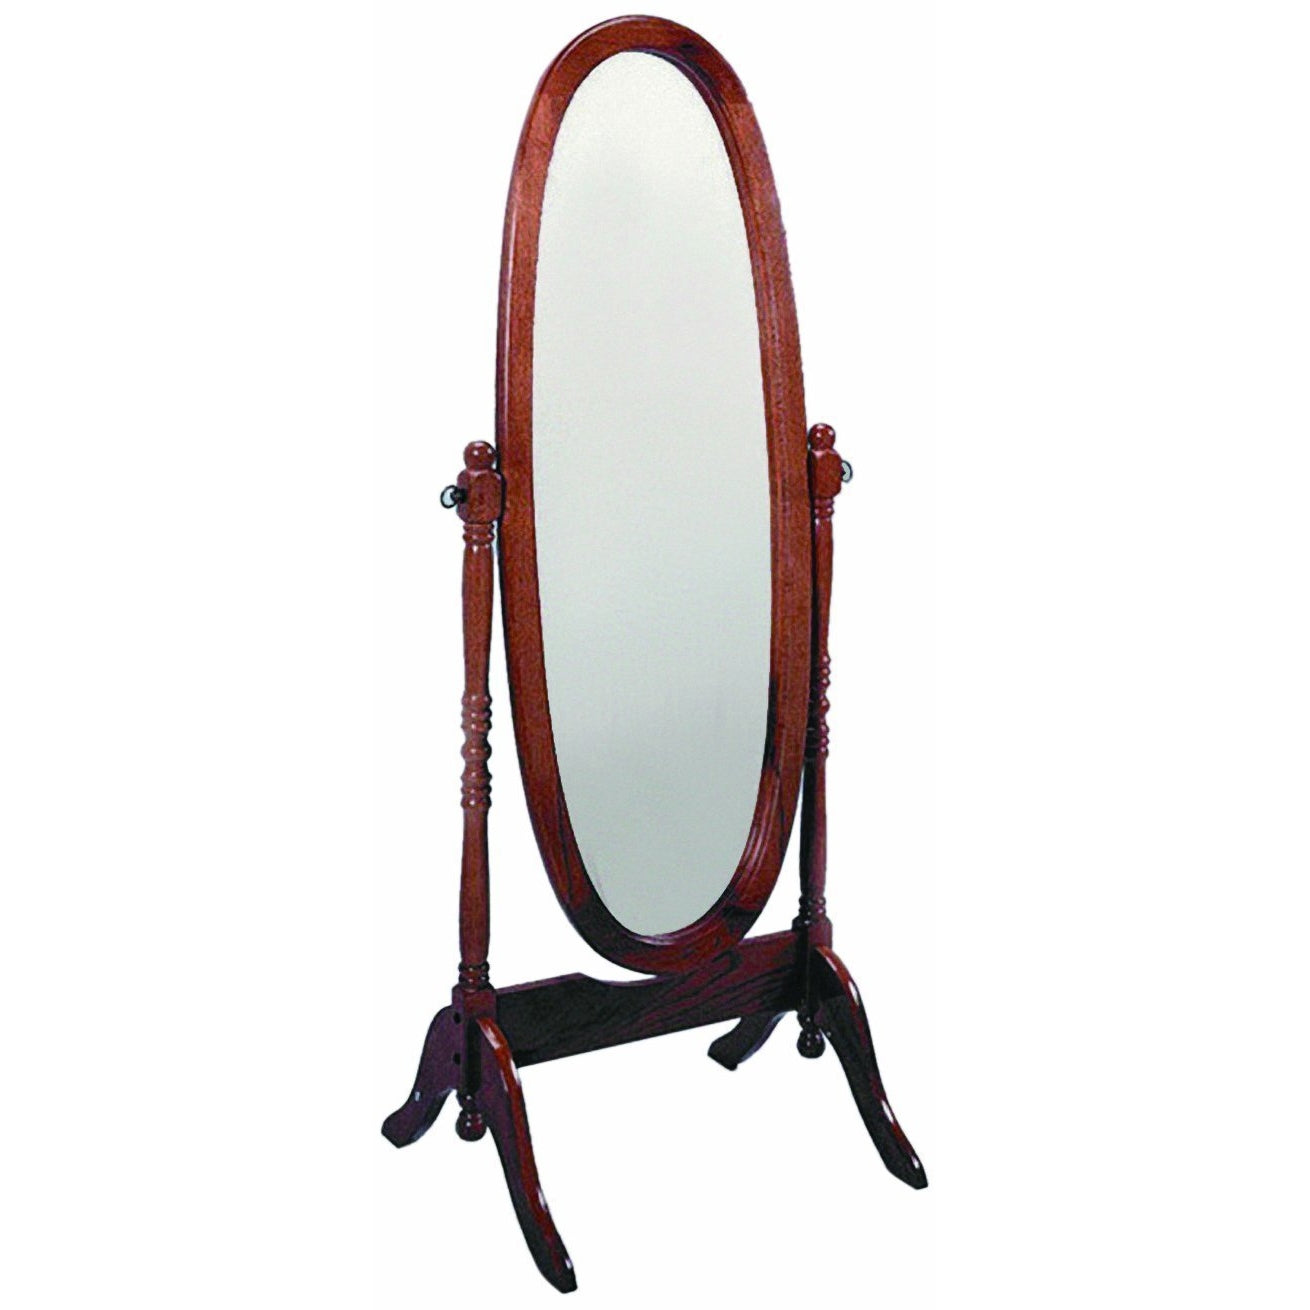 Cheval 2067 Cherry Mirror - Bellaria Furniture HomeStore